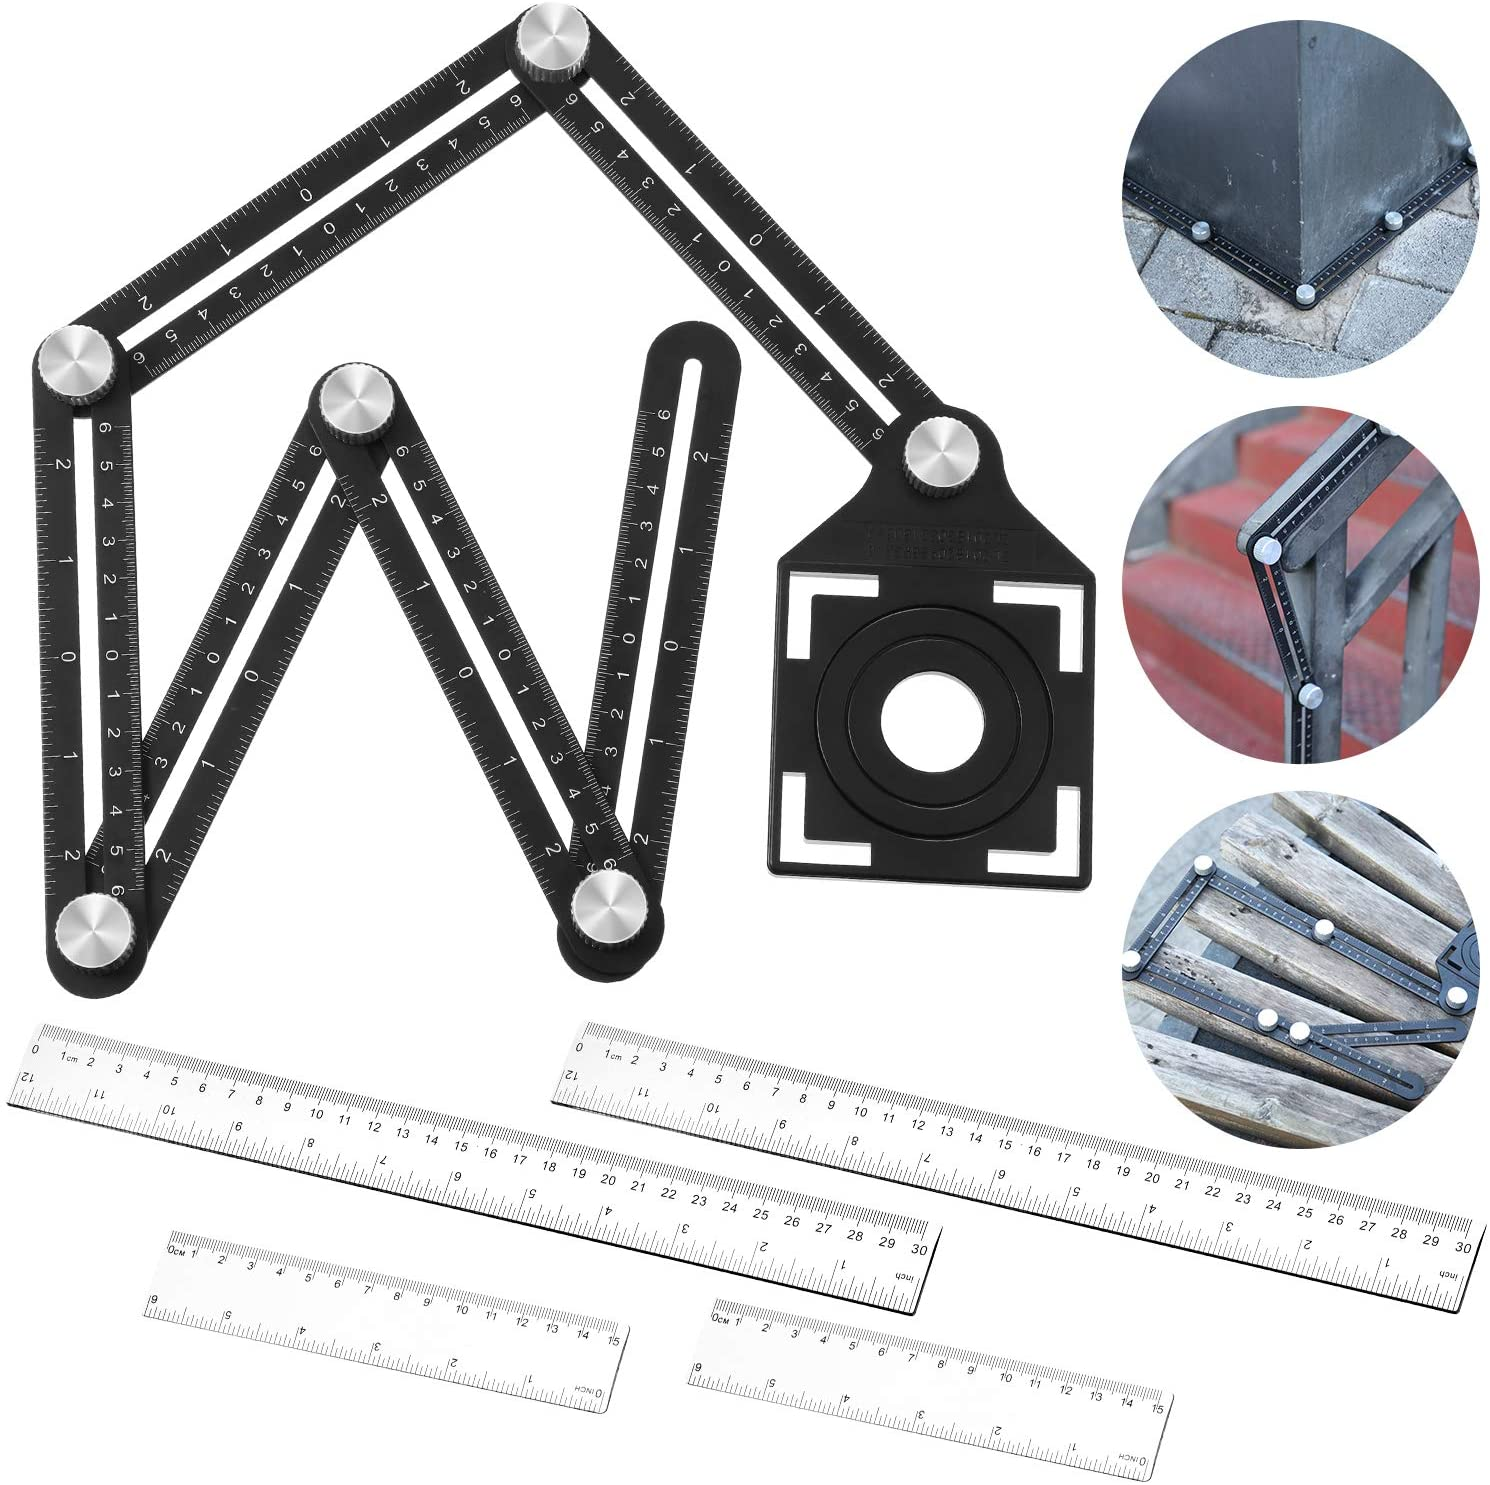 Multi-Angle Measuring Ruler Six-Sided Measuring Tool Aluminum Alloy Ruler Multi Angle Ruler and 4 Pieces 12 Inch and 6 Inch Plastic Rulers for Builders, Craftsmen, Carpenters